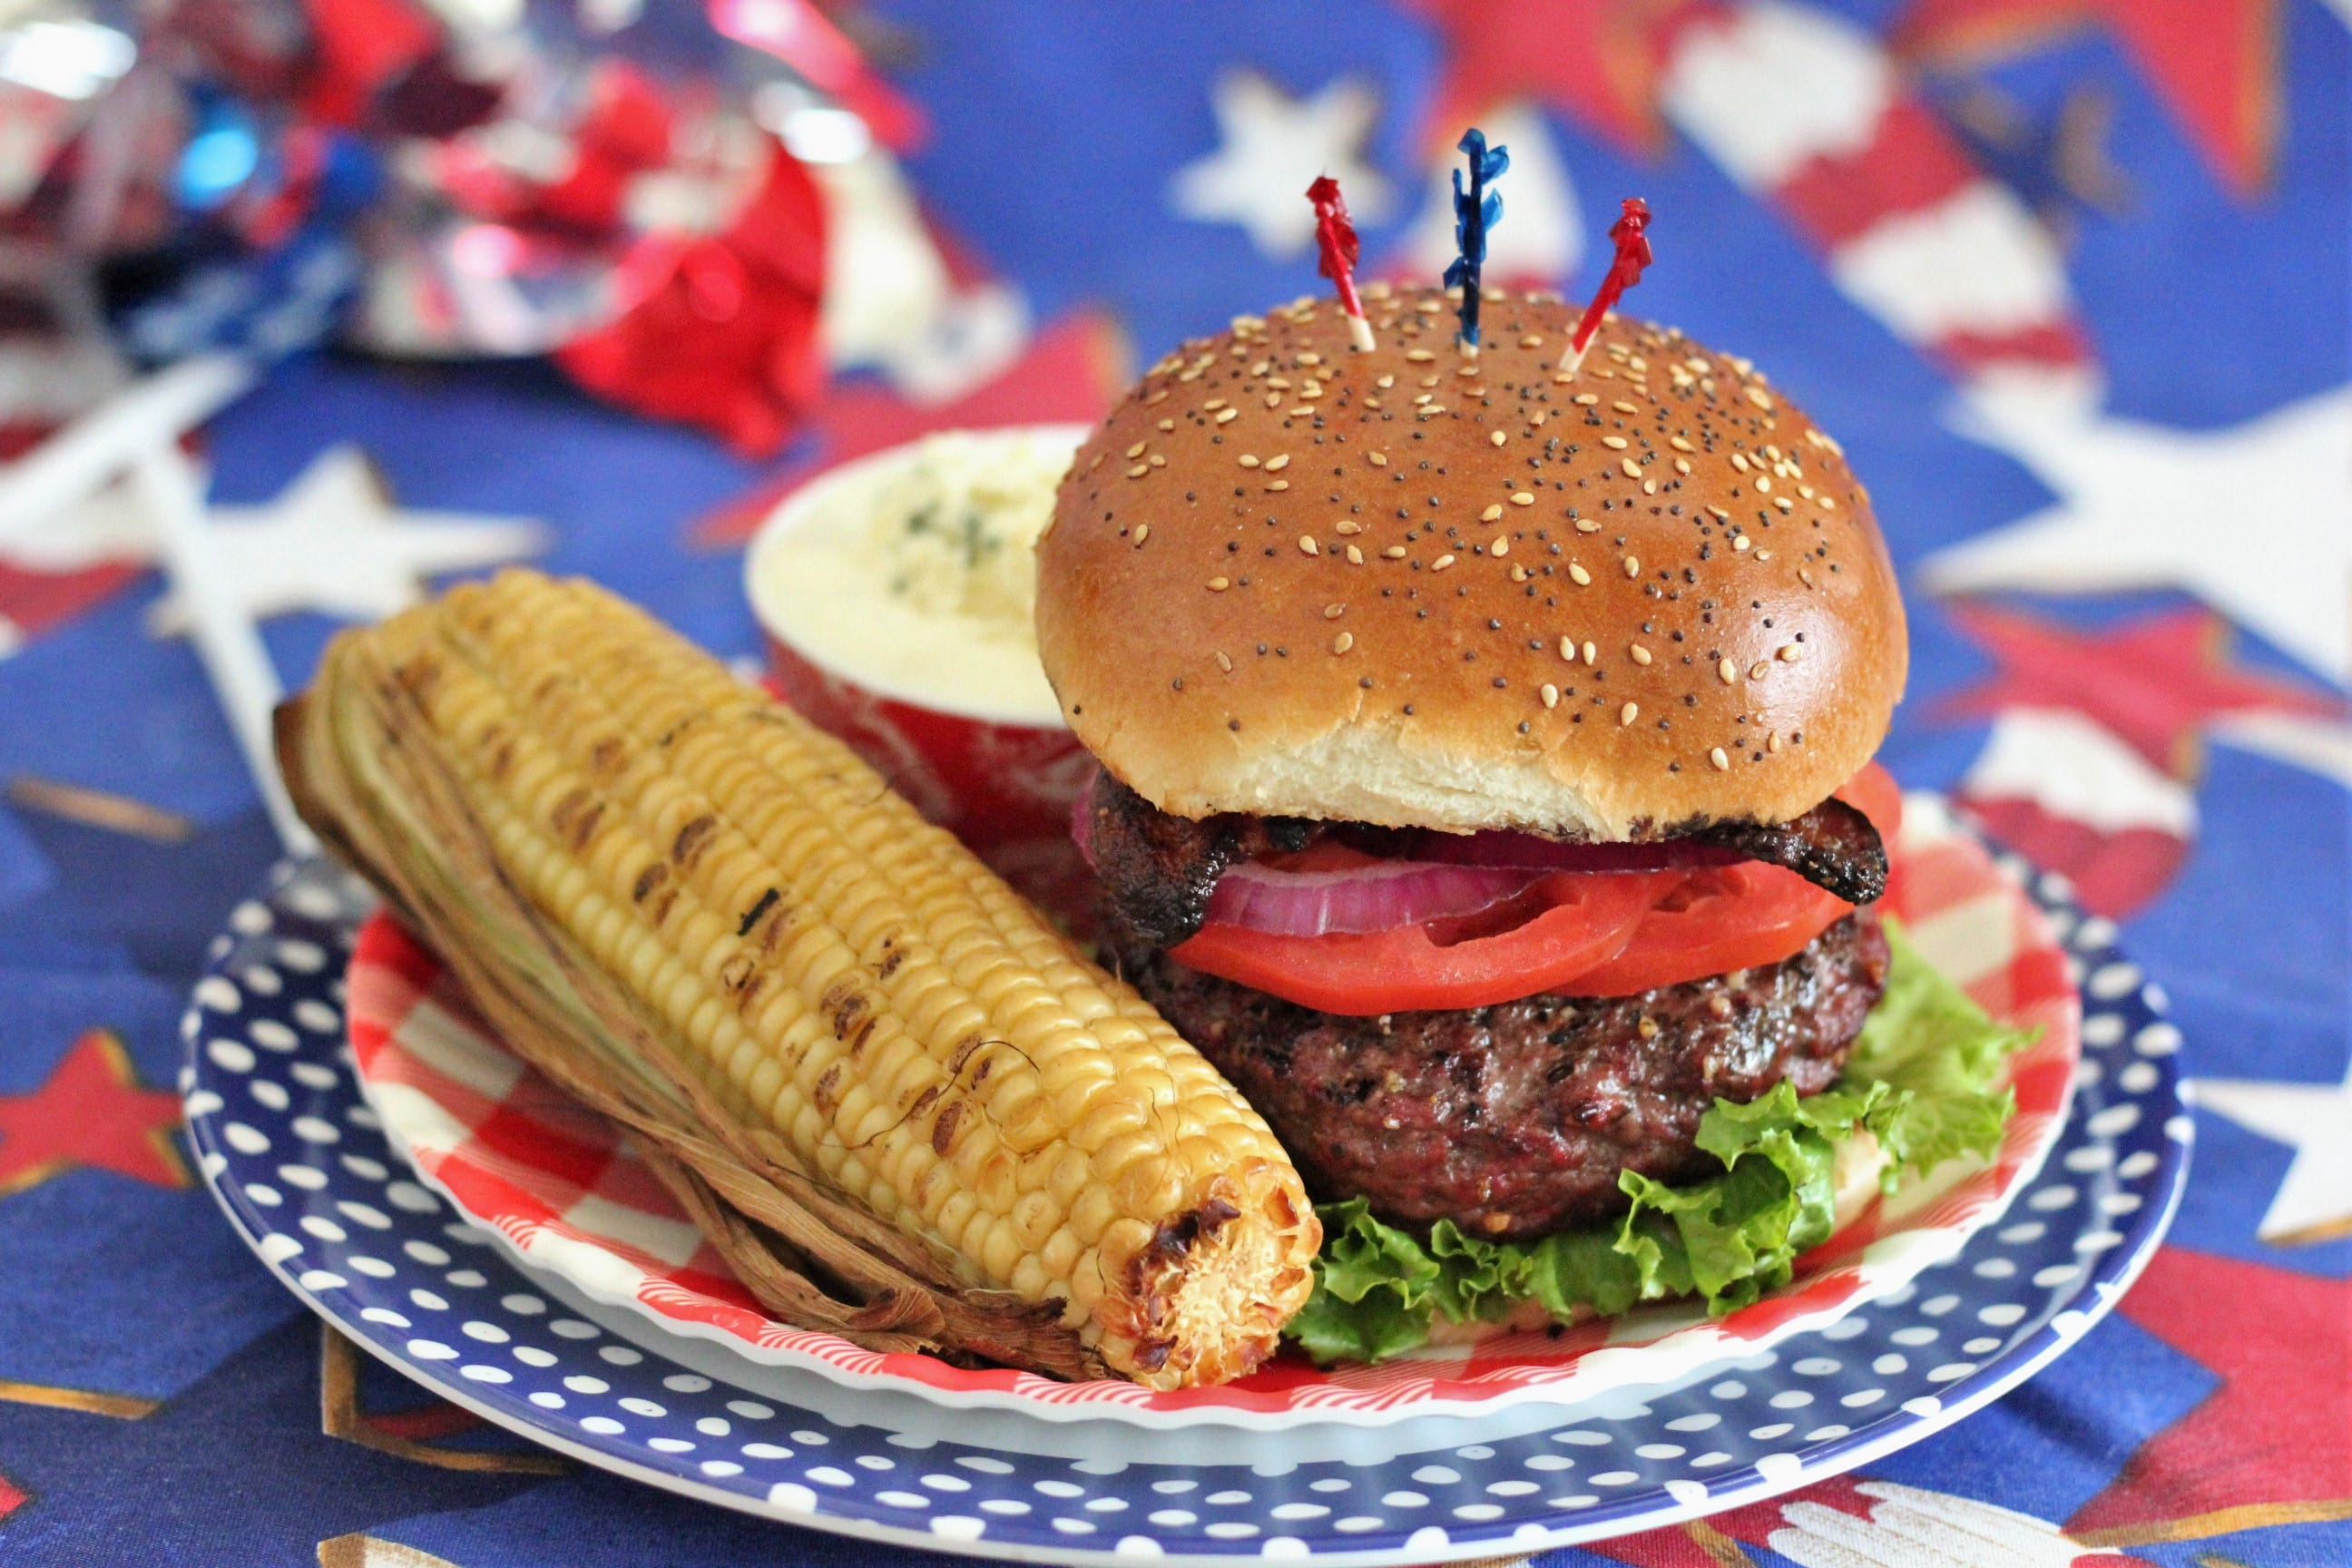 assembled stuffed burger on a red plate with whole grilled corn.